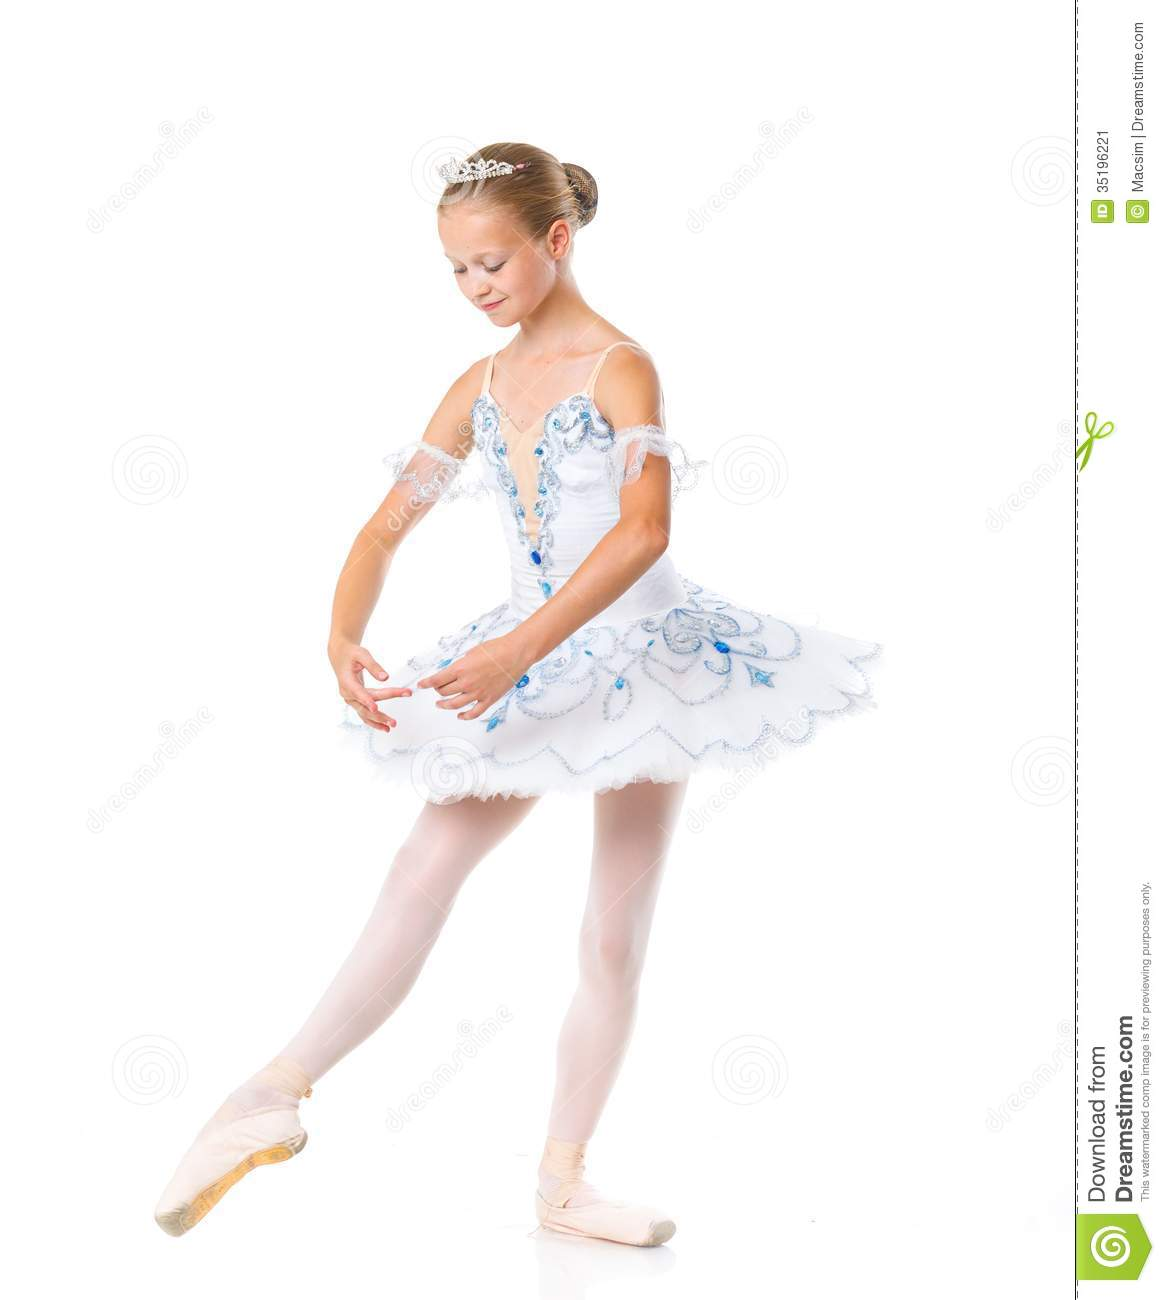 Beautiful young ballerina in classical tutu on a white background.